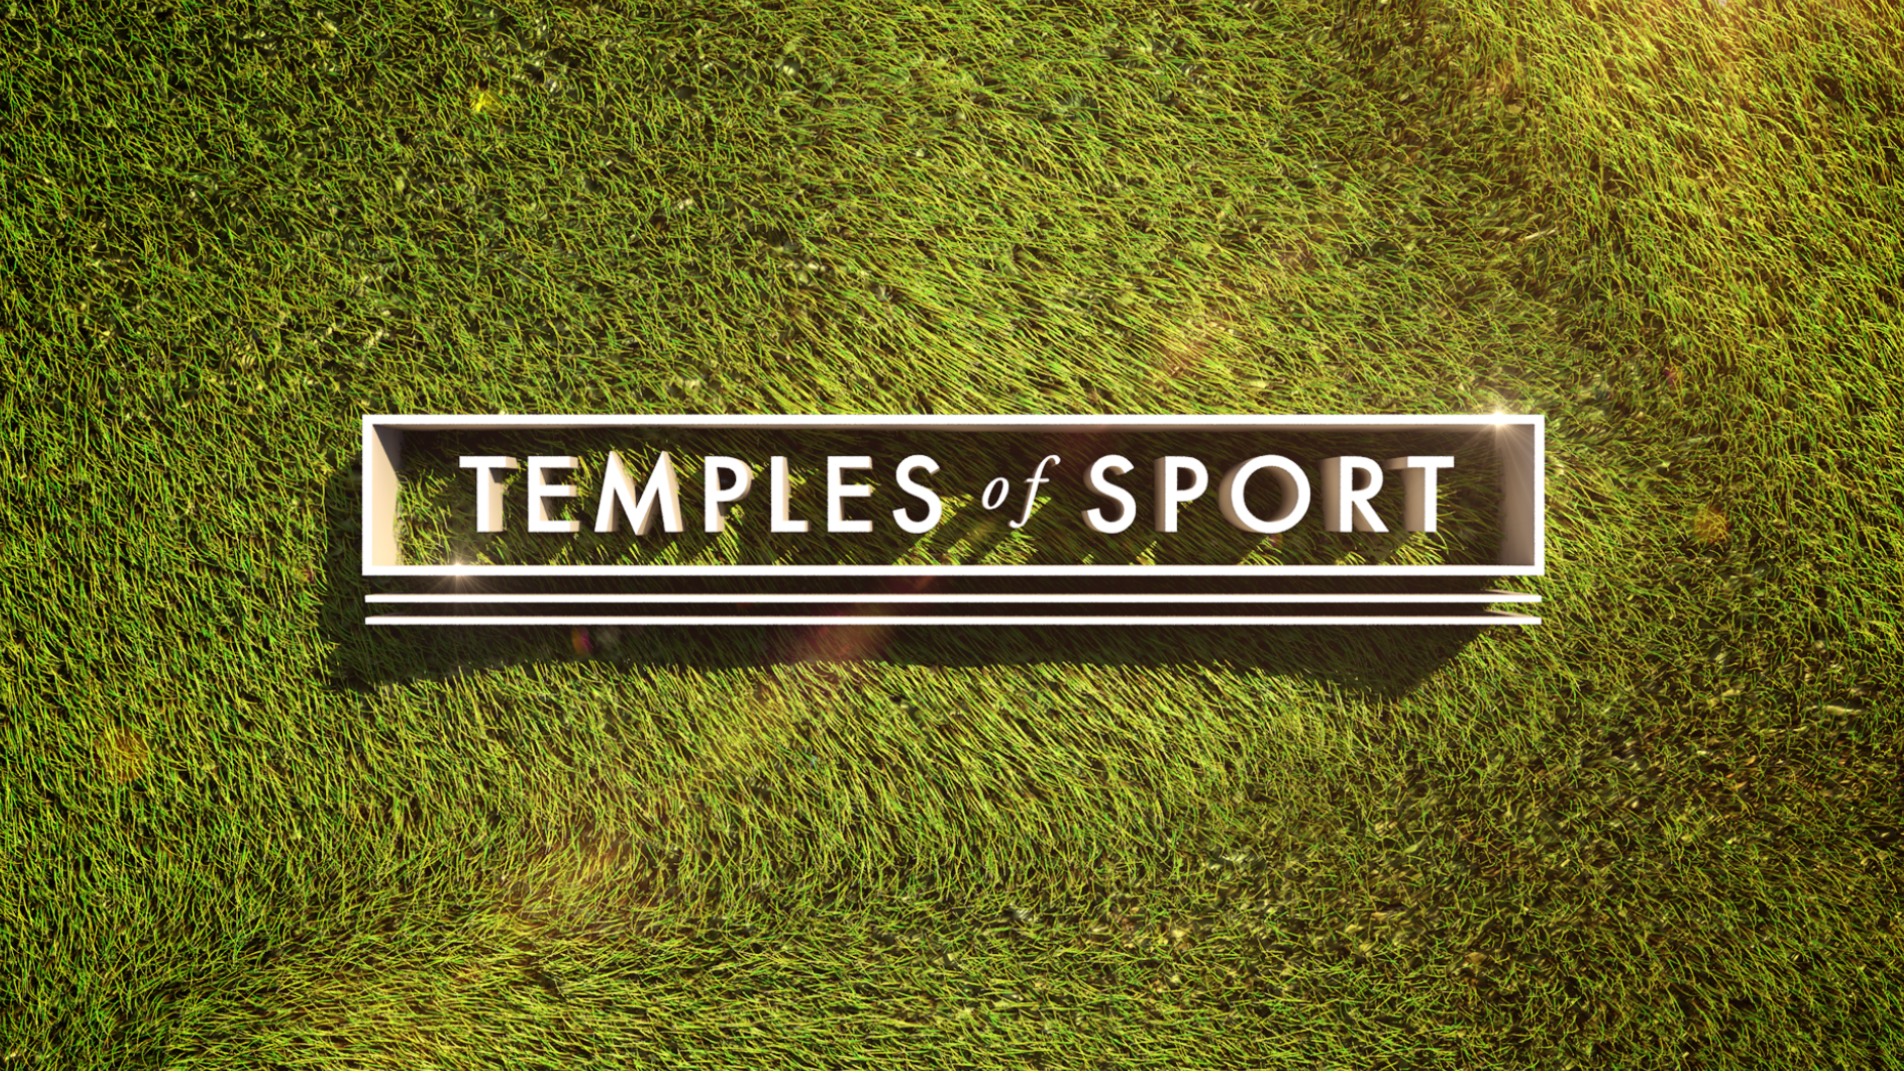 Temples of Sport